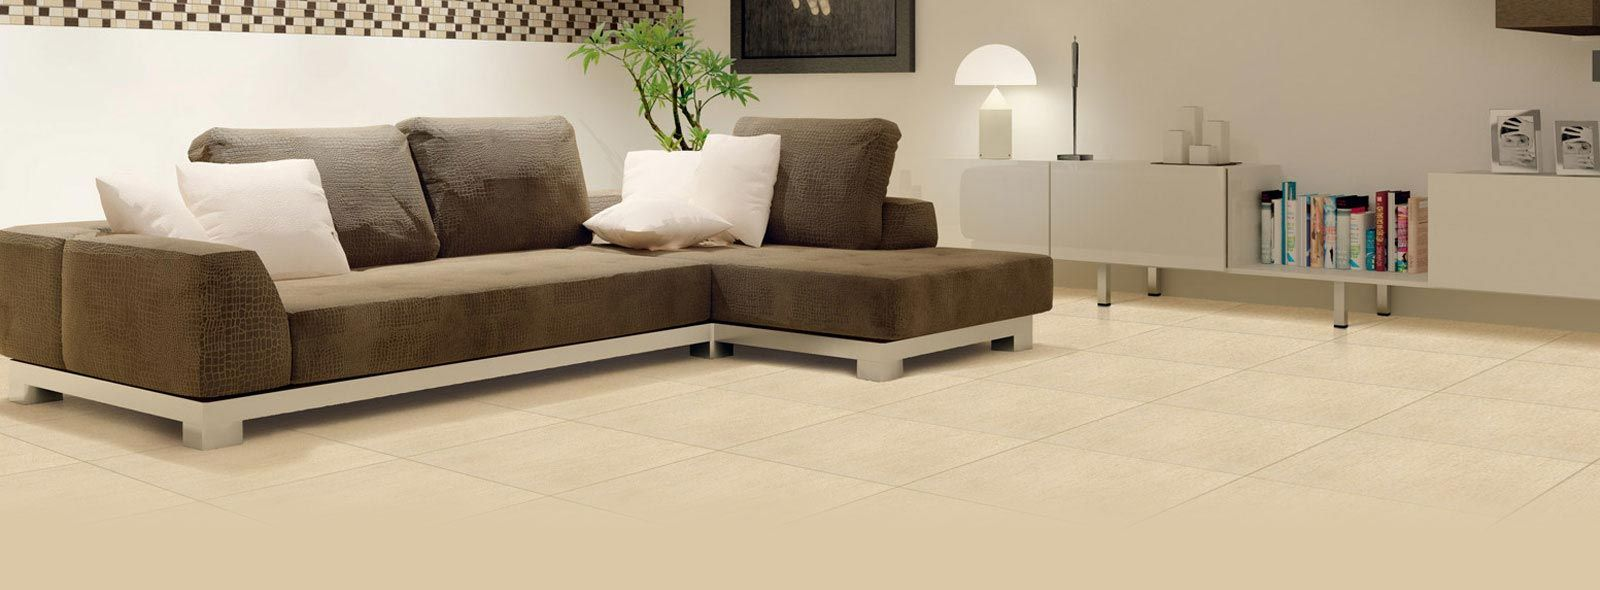 Top  Ideas About Tiles Exporter India On Pinterest Ceramics - Tile designs for living room floors